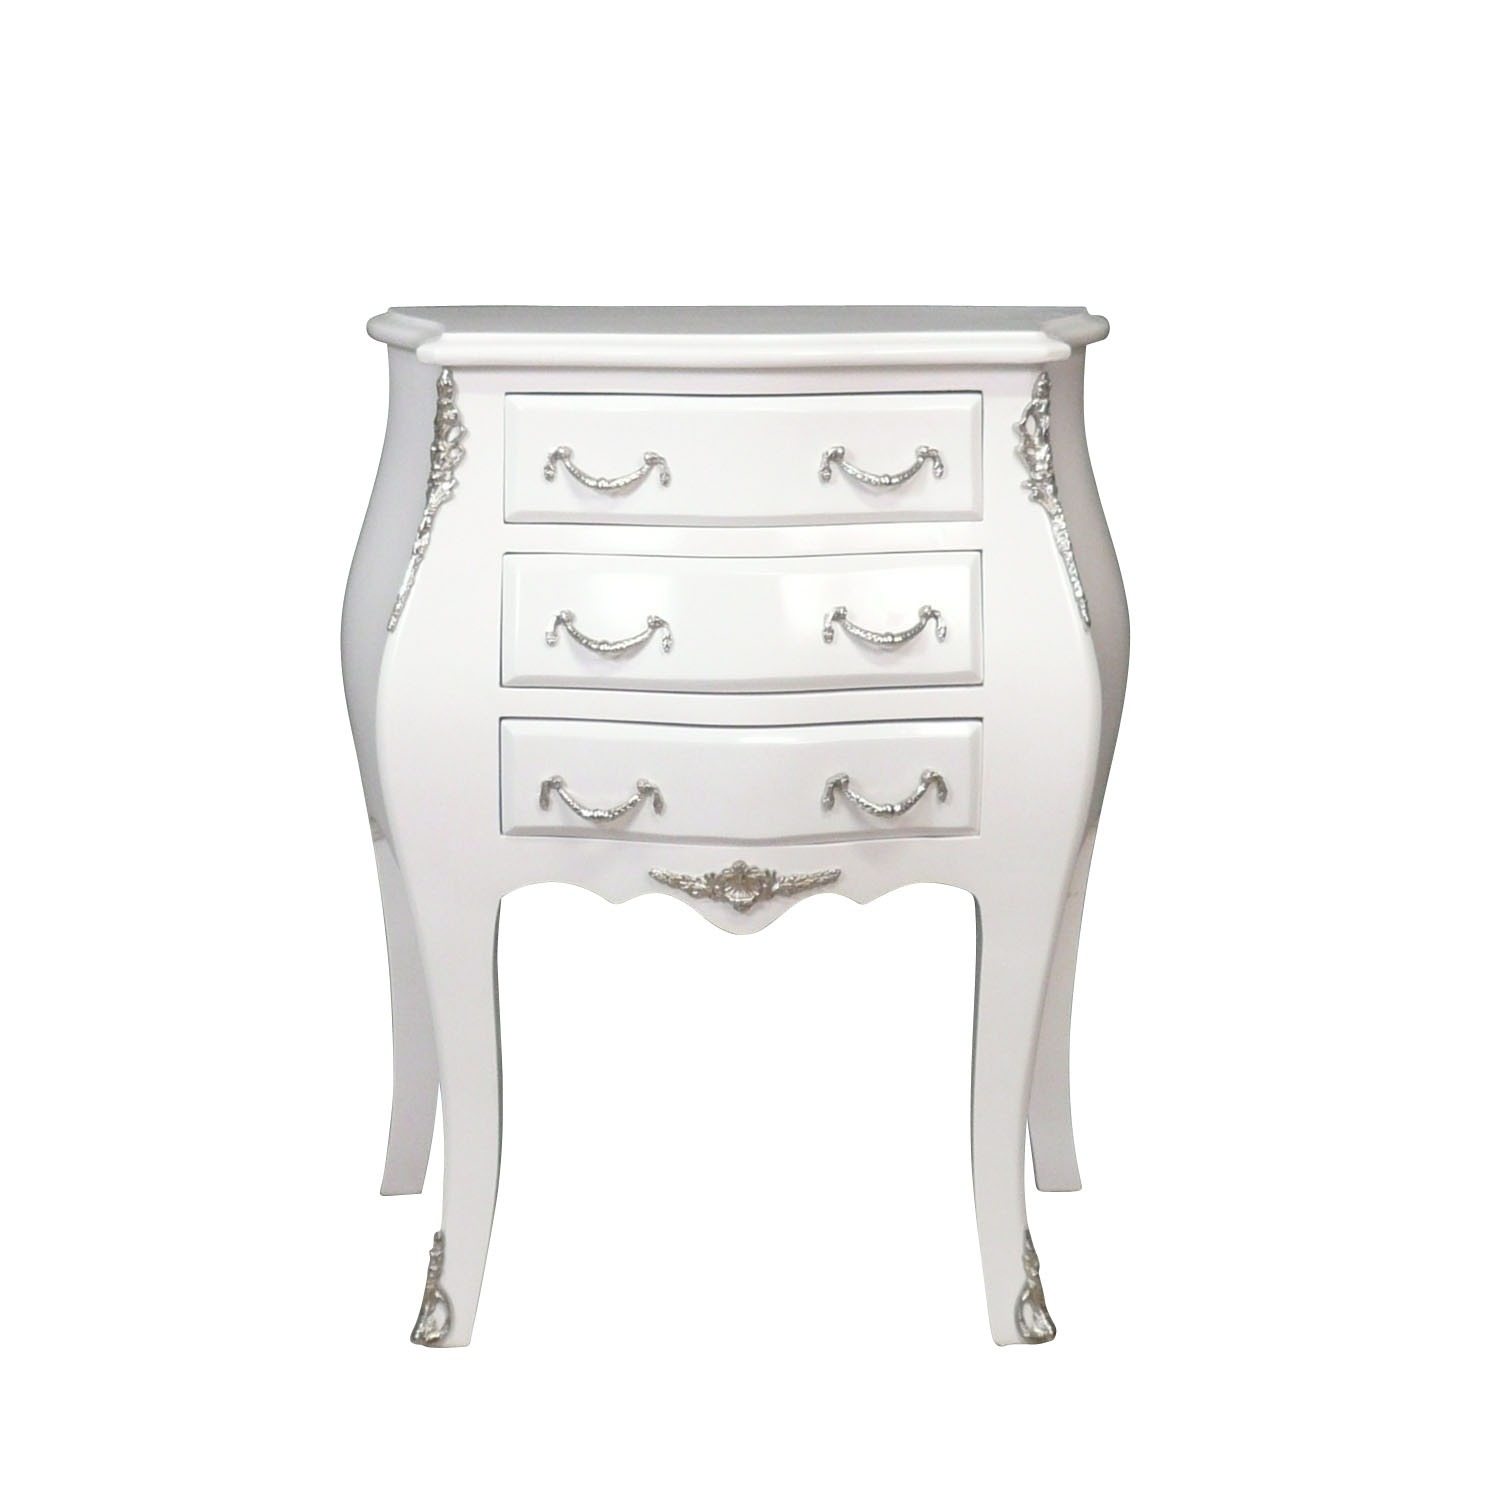 commode baroque blanche style louis xv ebay. Black Bedroom Furniture Sets. Home Design Ideas